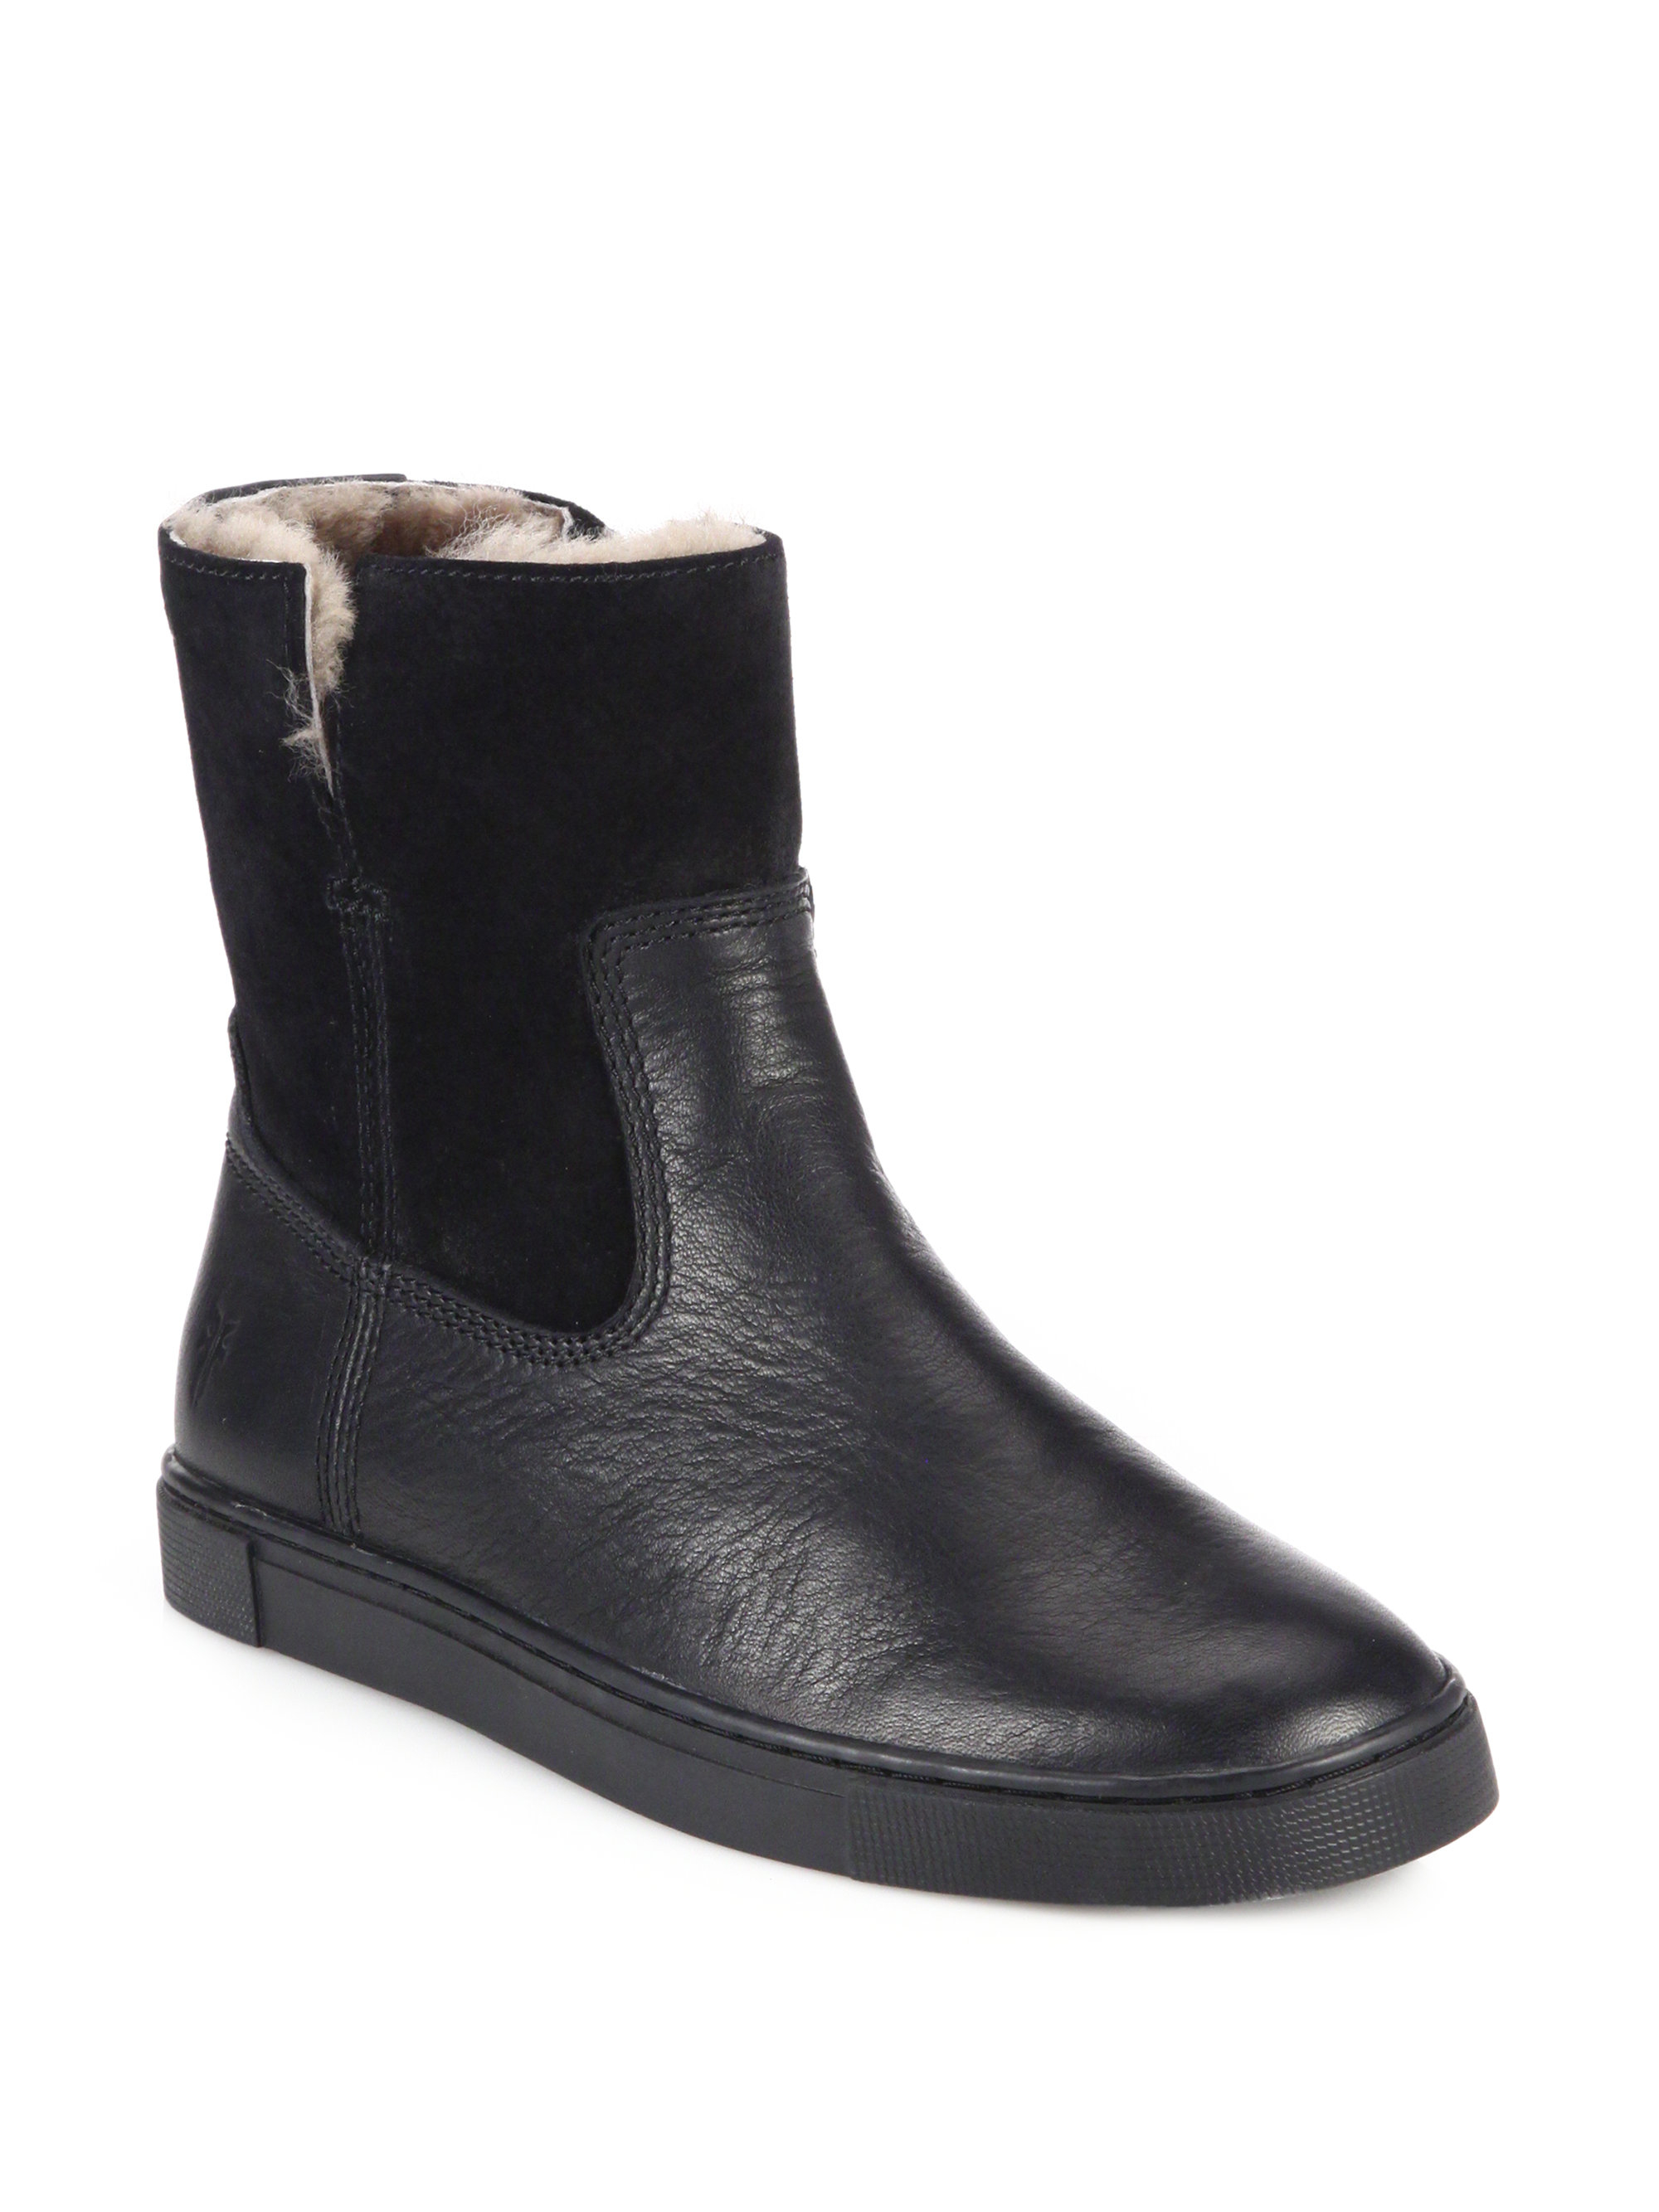 Frye Gemma Shearling Lined Leather Amp Suede Ankle Boots In